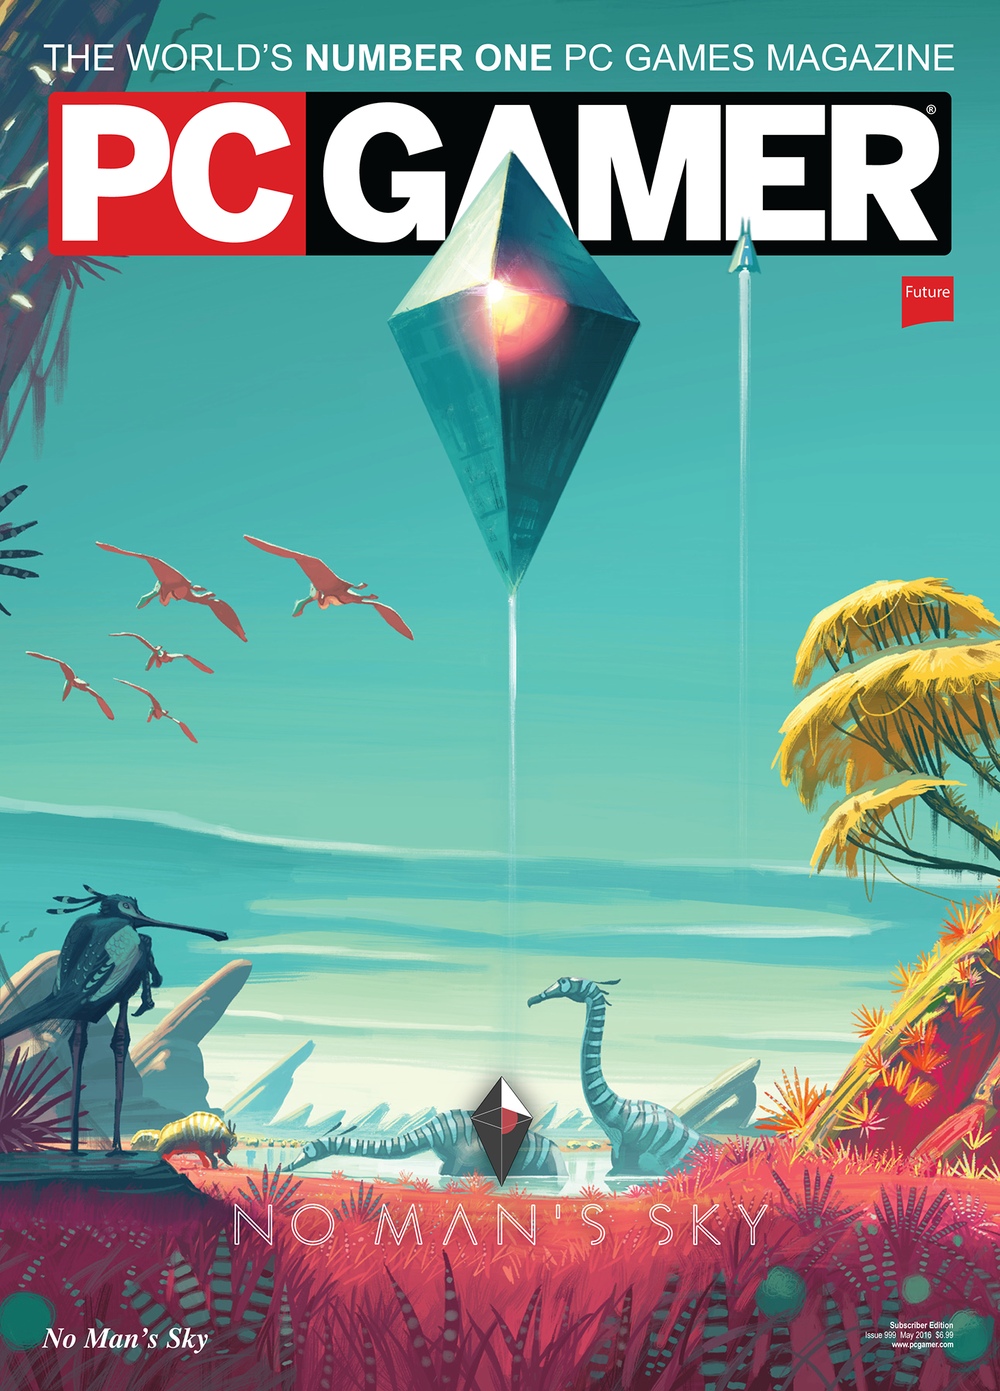 No Man's Sky Magazine Cover